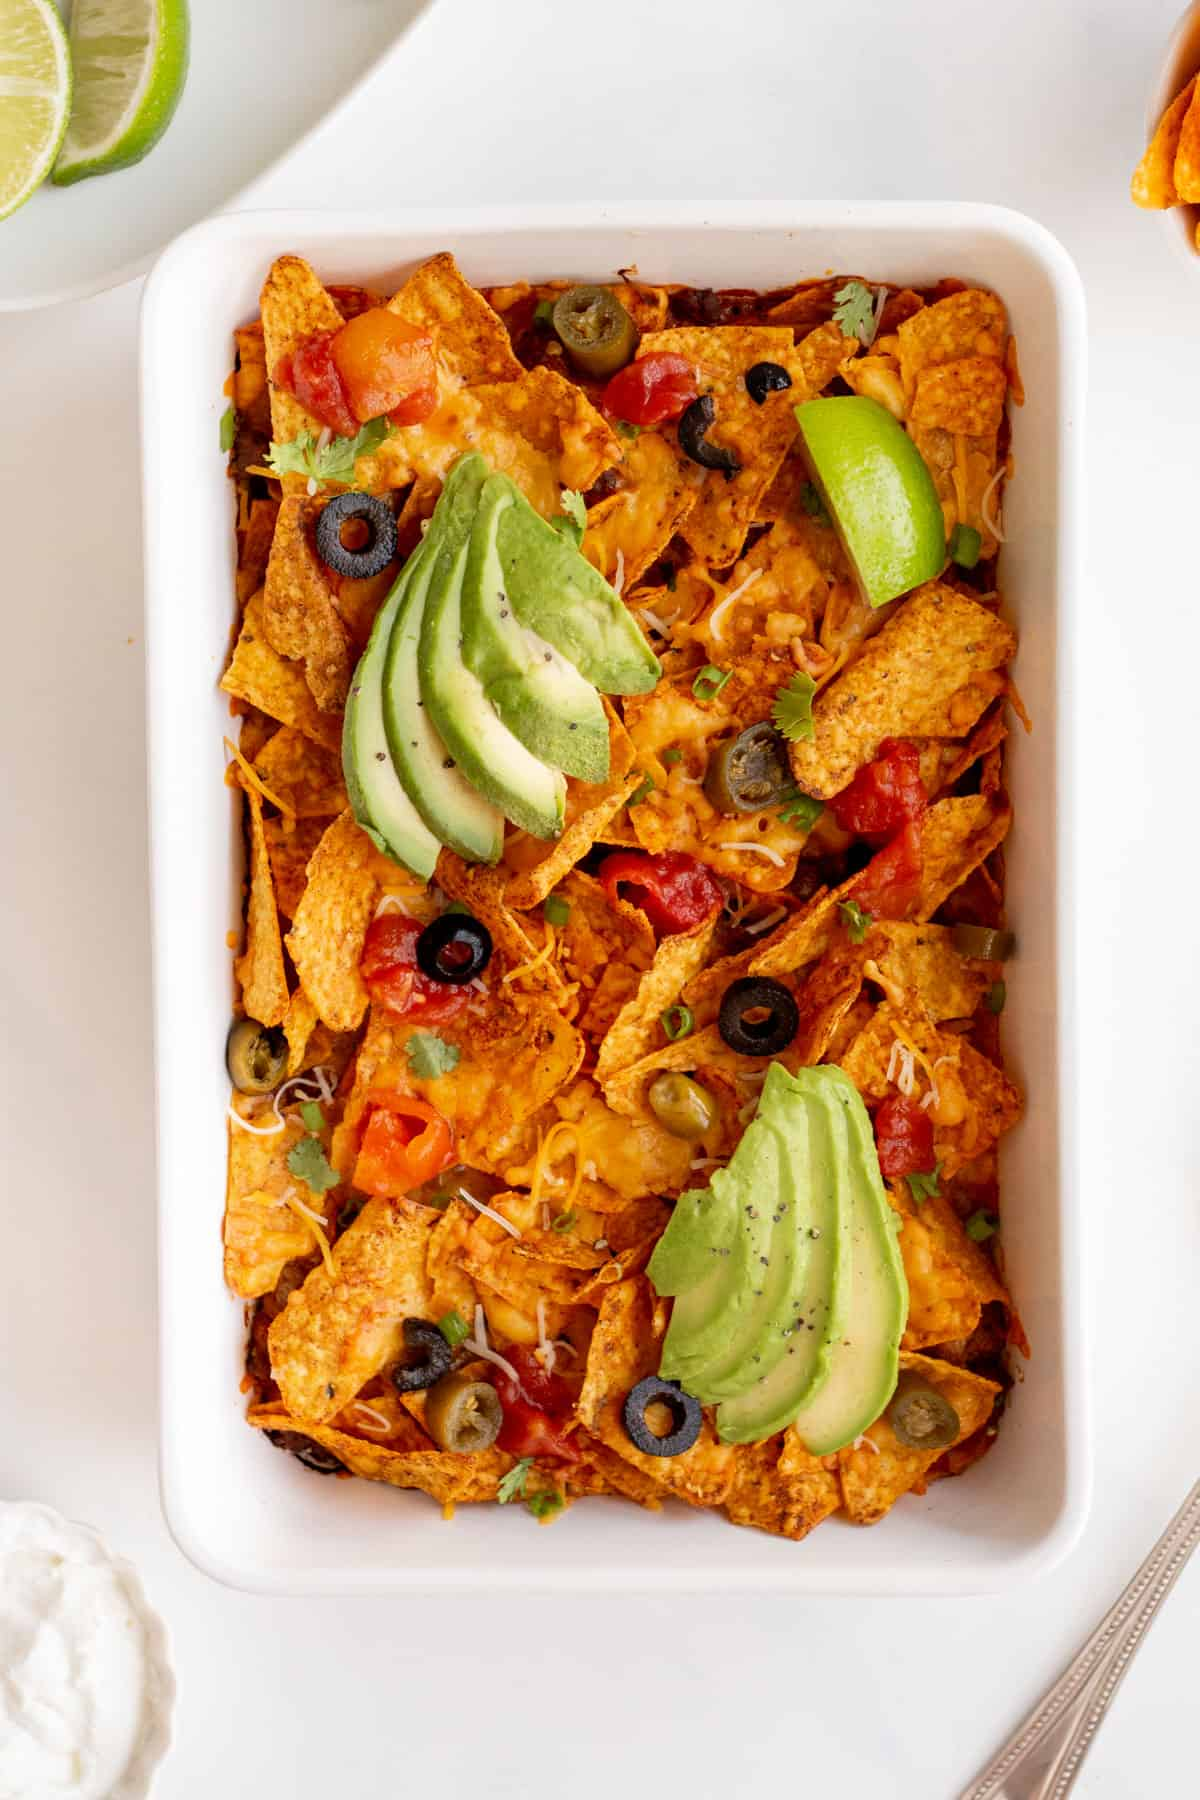 doritos casserole in a white rectangle dish, topped with sliced black olives, tomatoes, jalepenoes, avocados, cilantro, shredded cheese, and lime